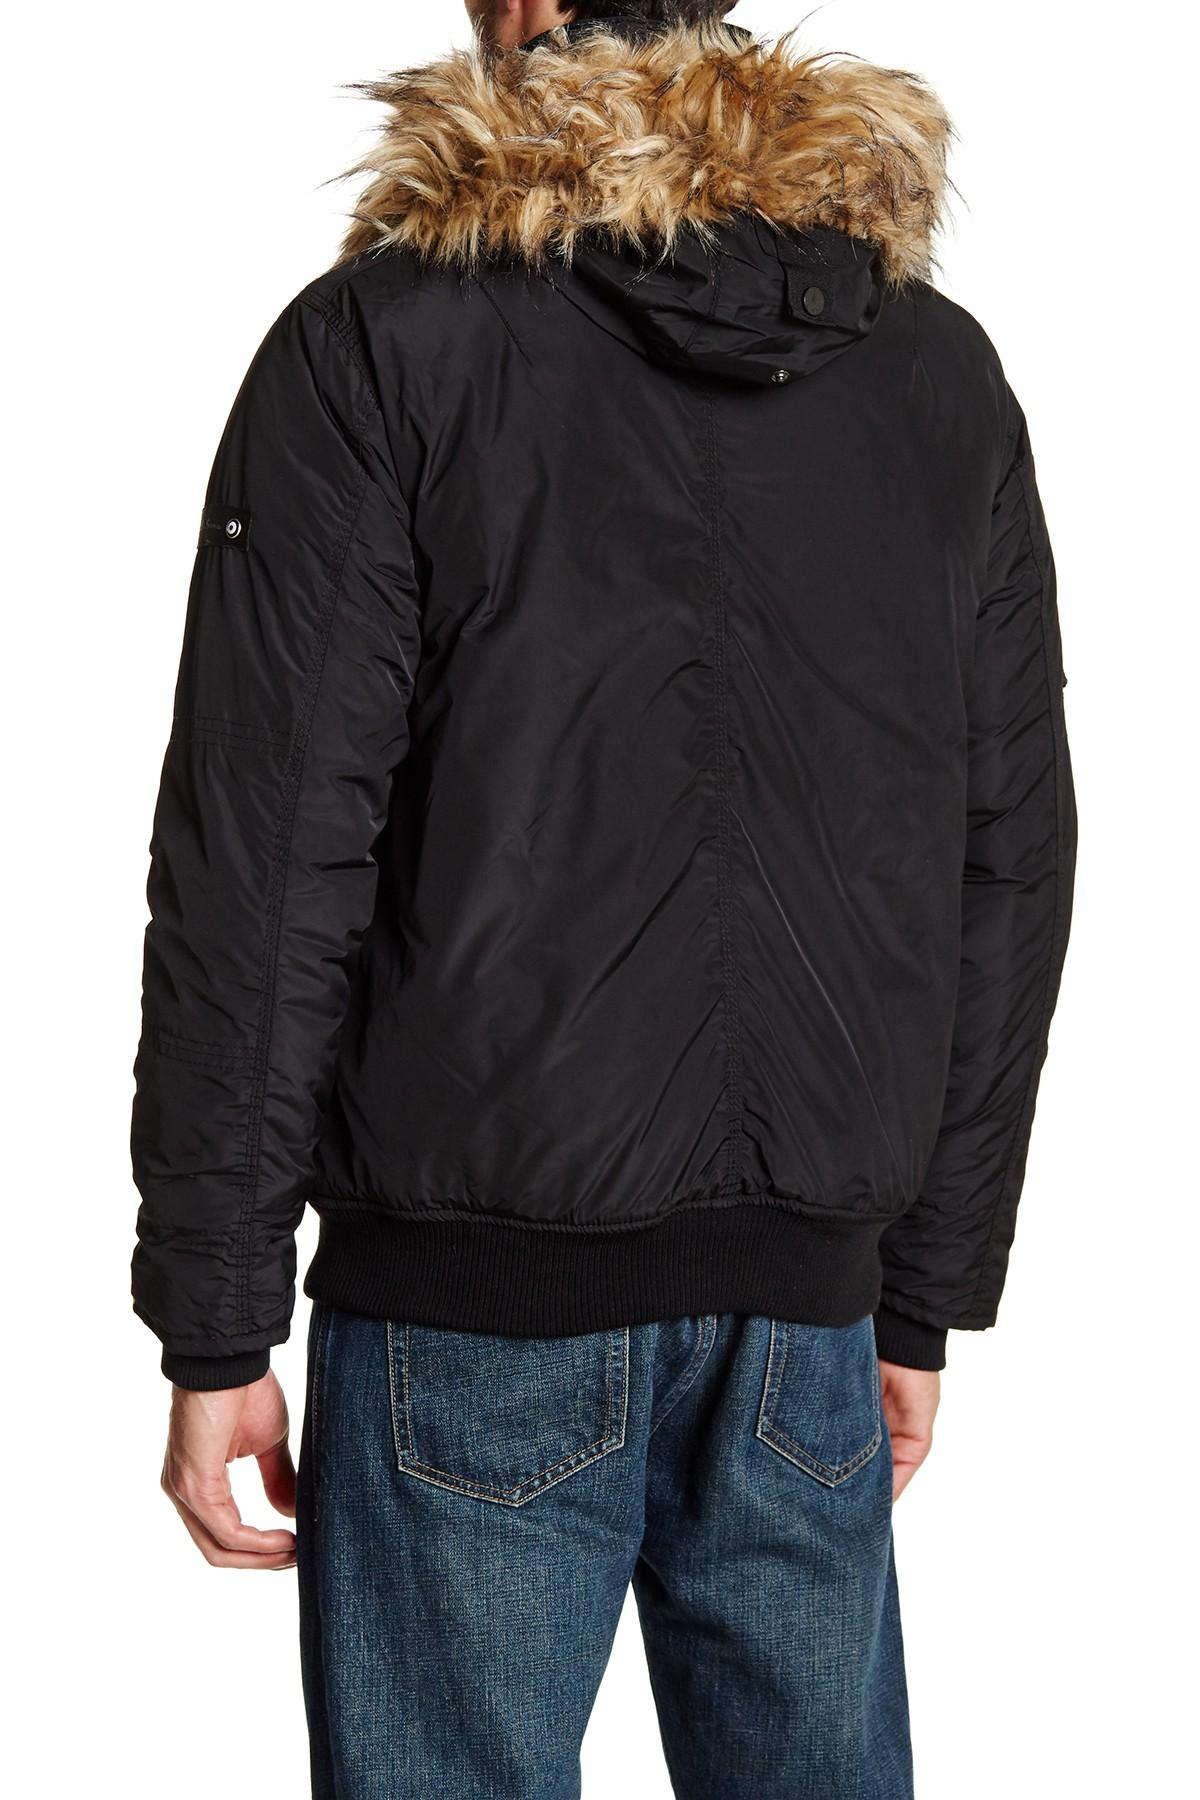 Lyst Ben Sherman Detachable Faux Fur Trim Hooded Bomber